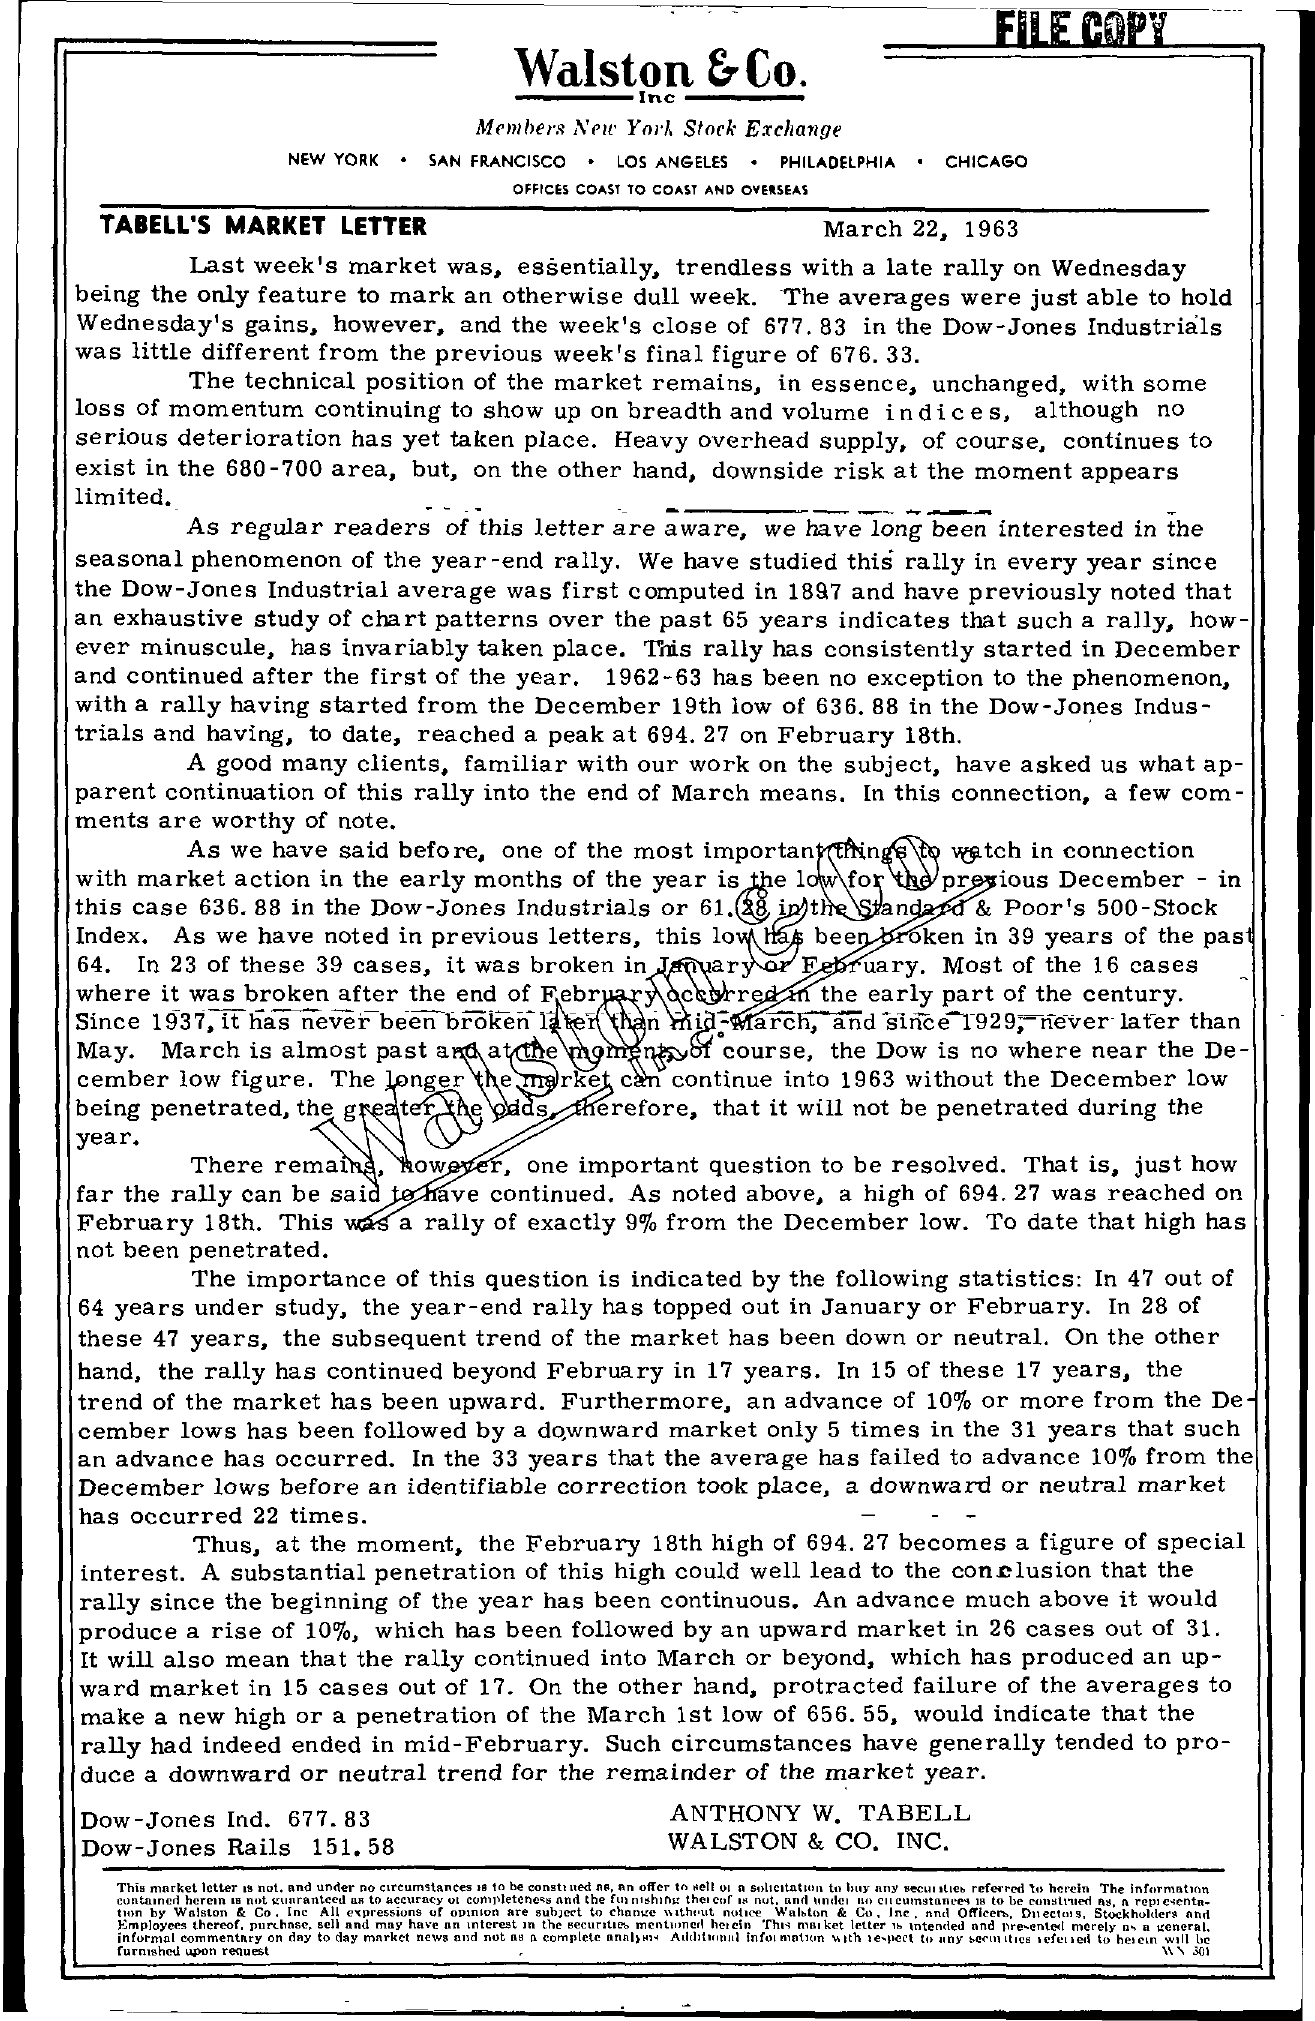 Tabell's Market Letter - March 22, 1963